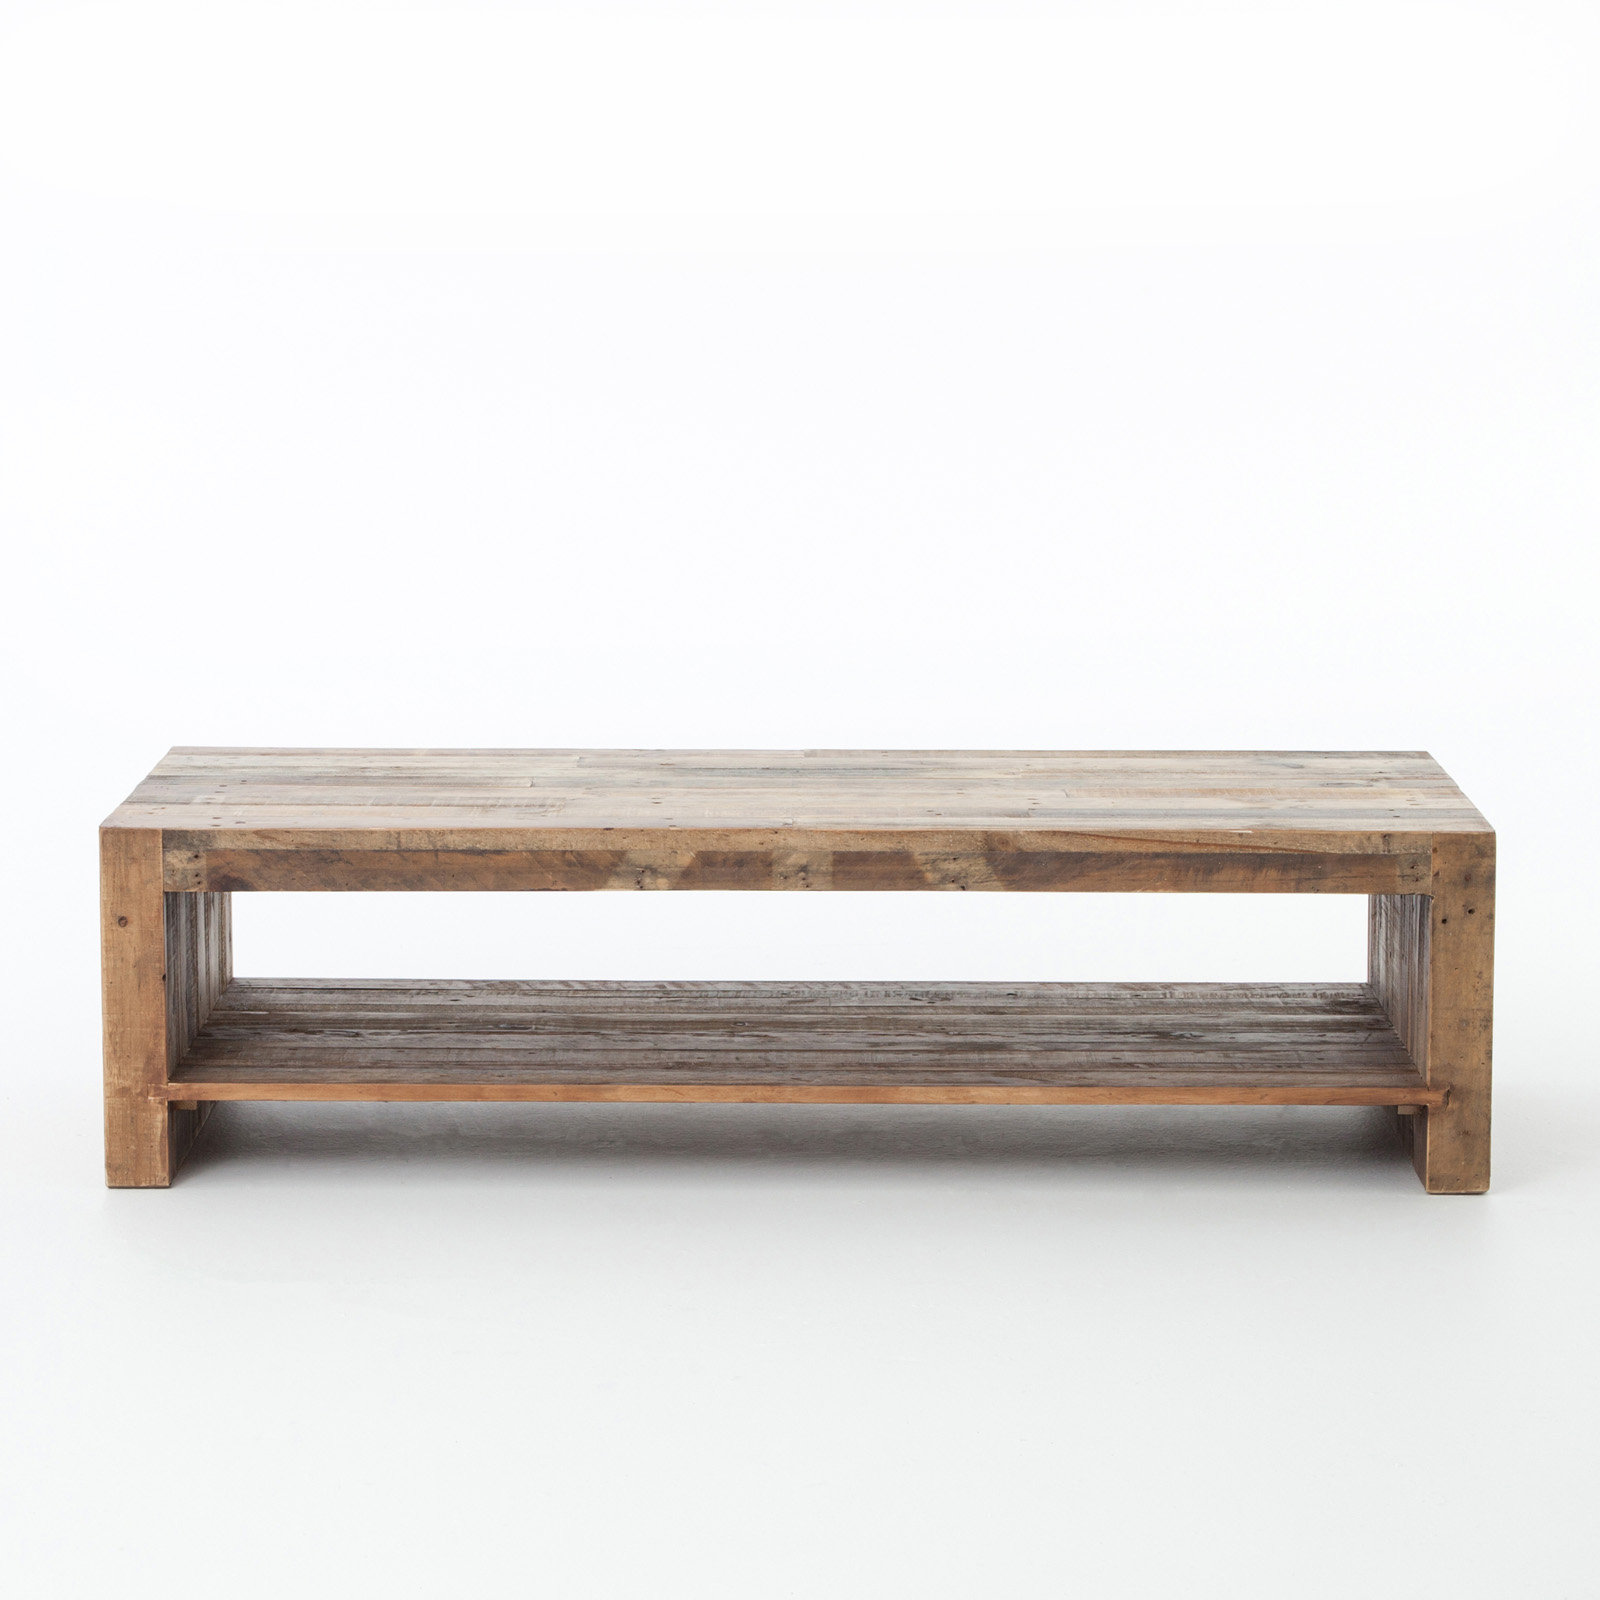 Four Hands Beckwourth Small Coffee Table